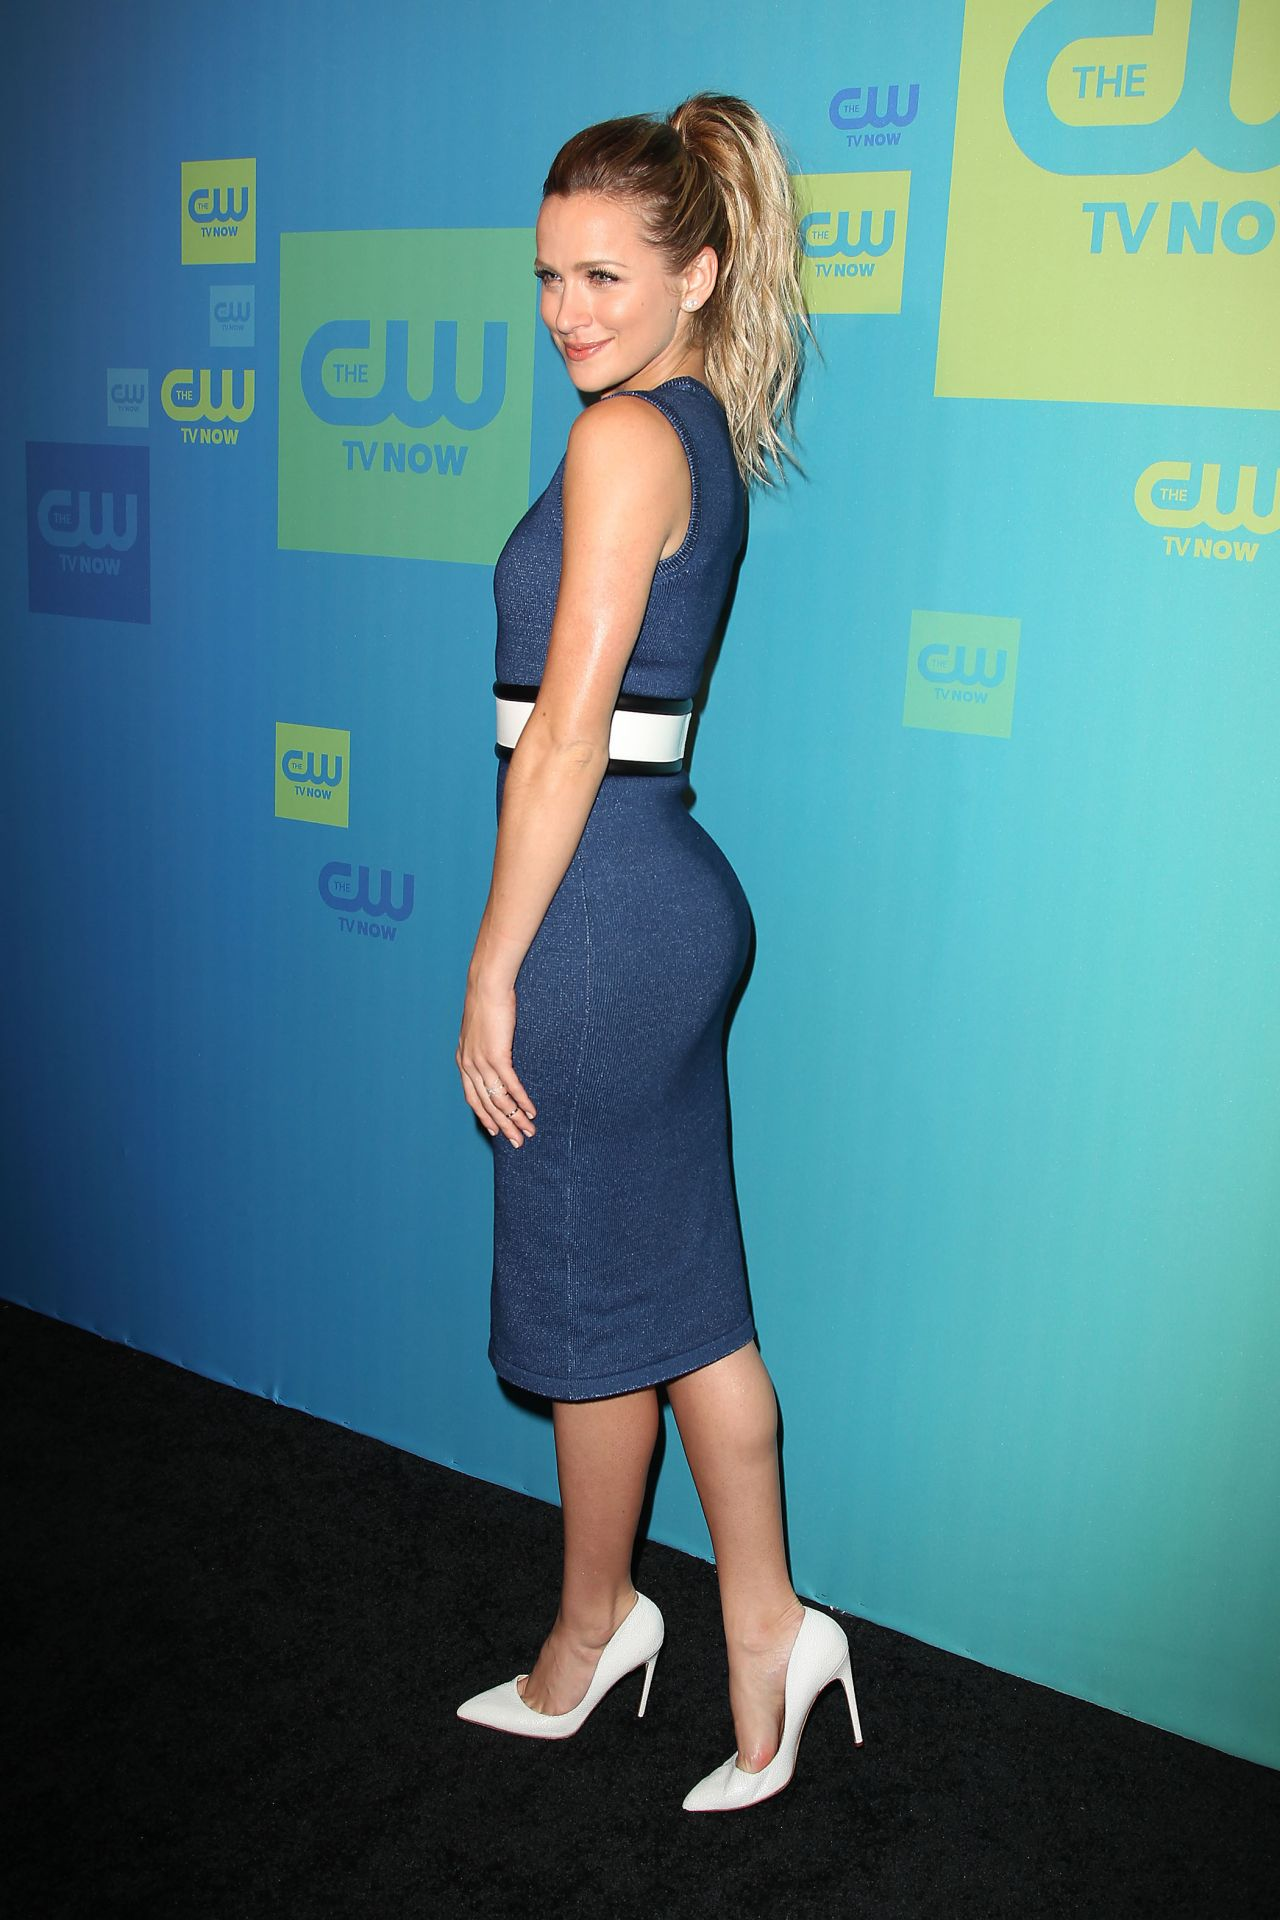 Shantel Vansanten The Cw Network S 2014 Upfront In New